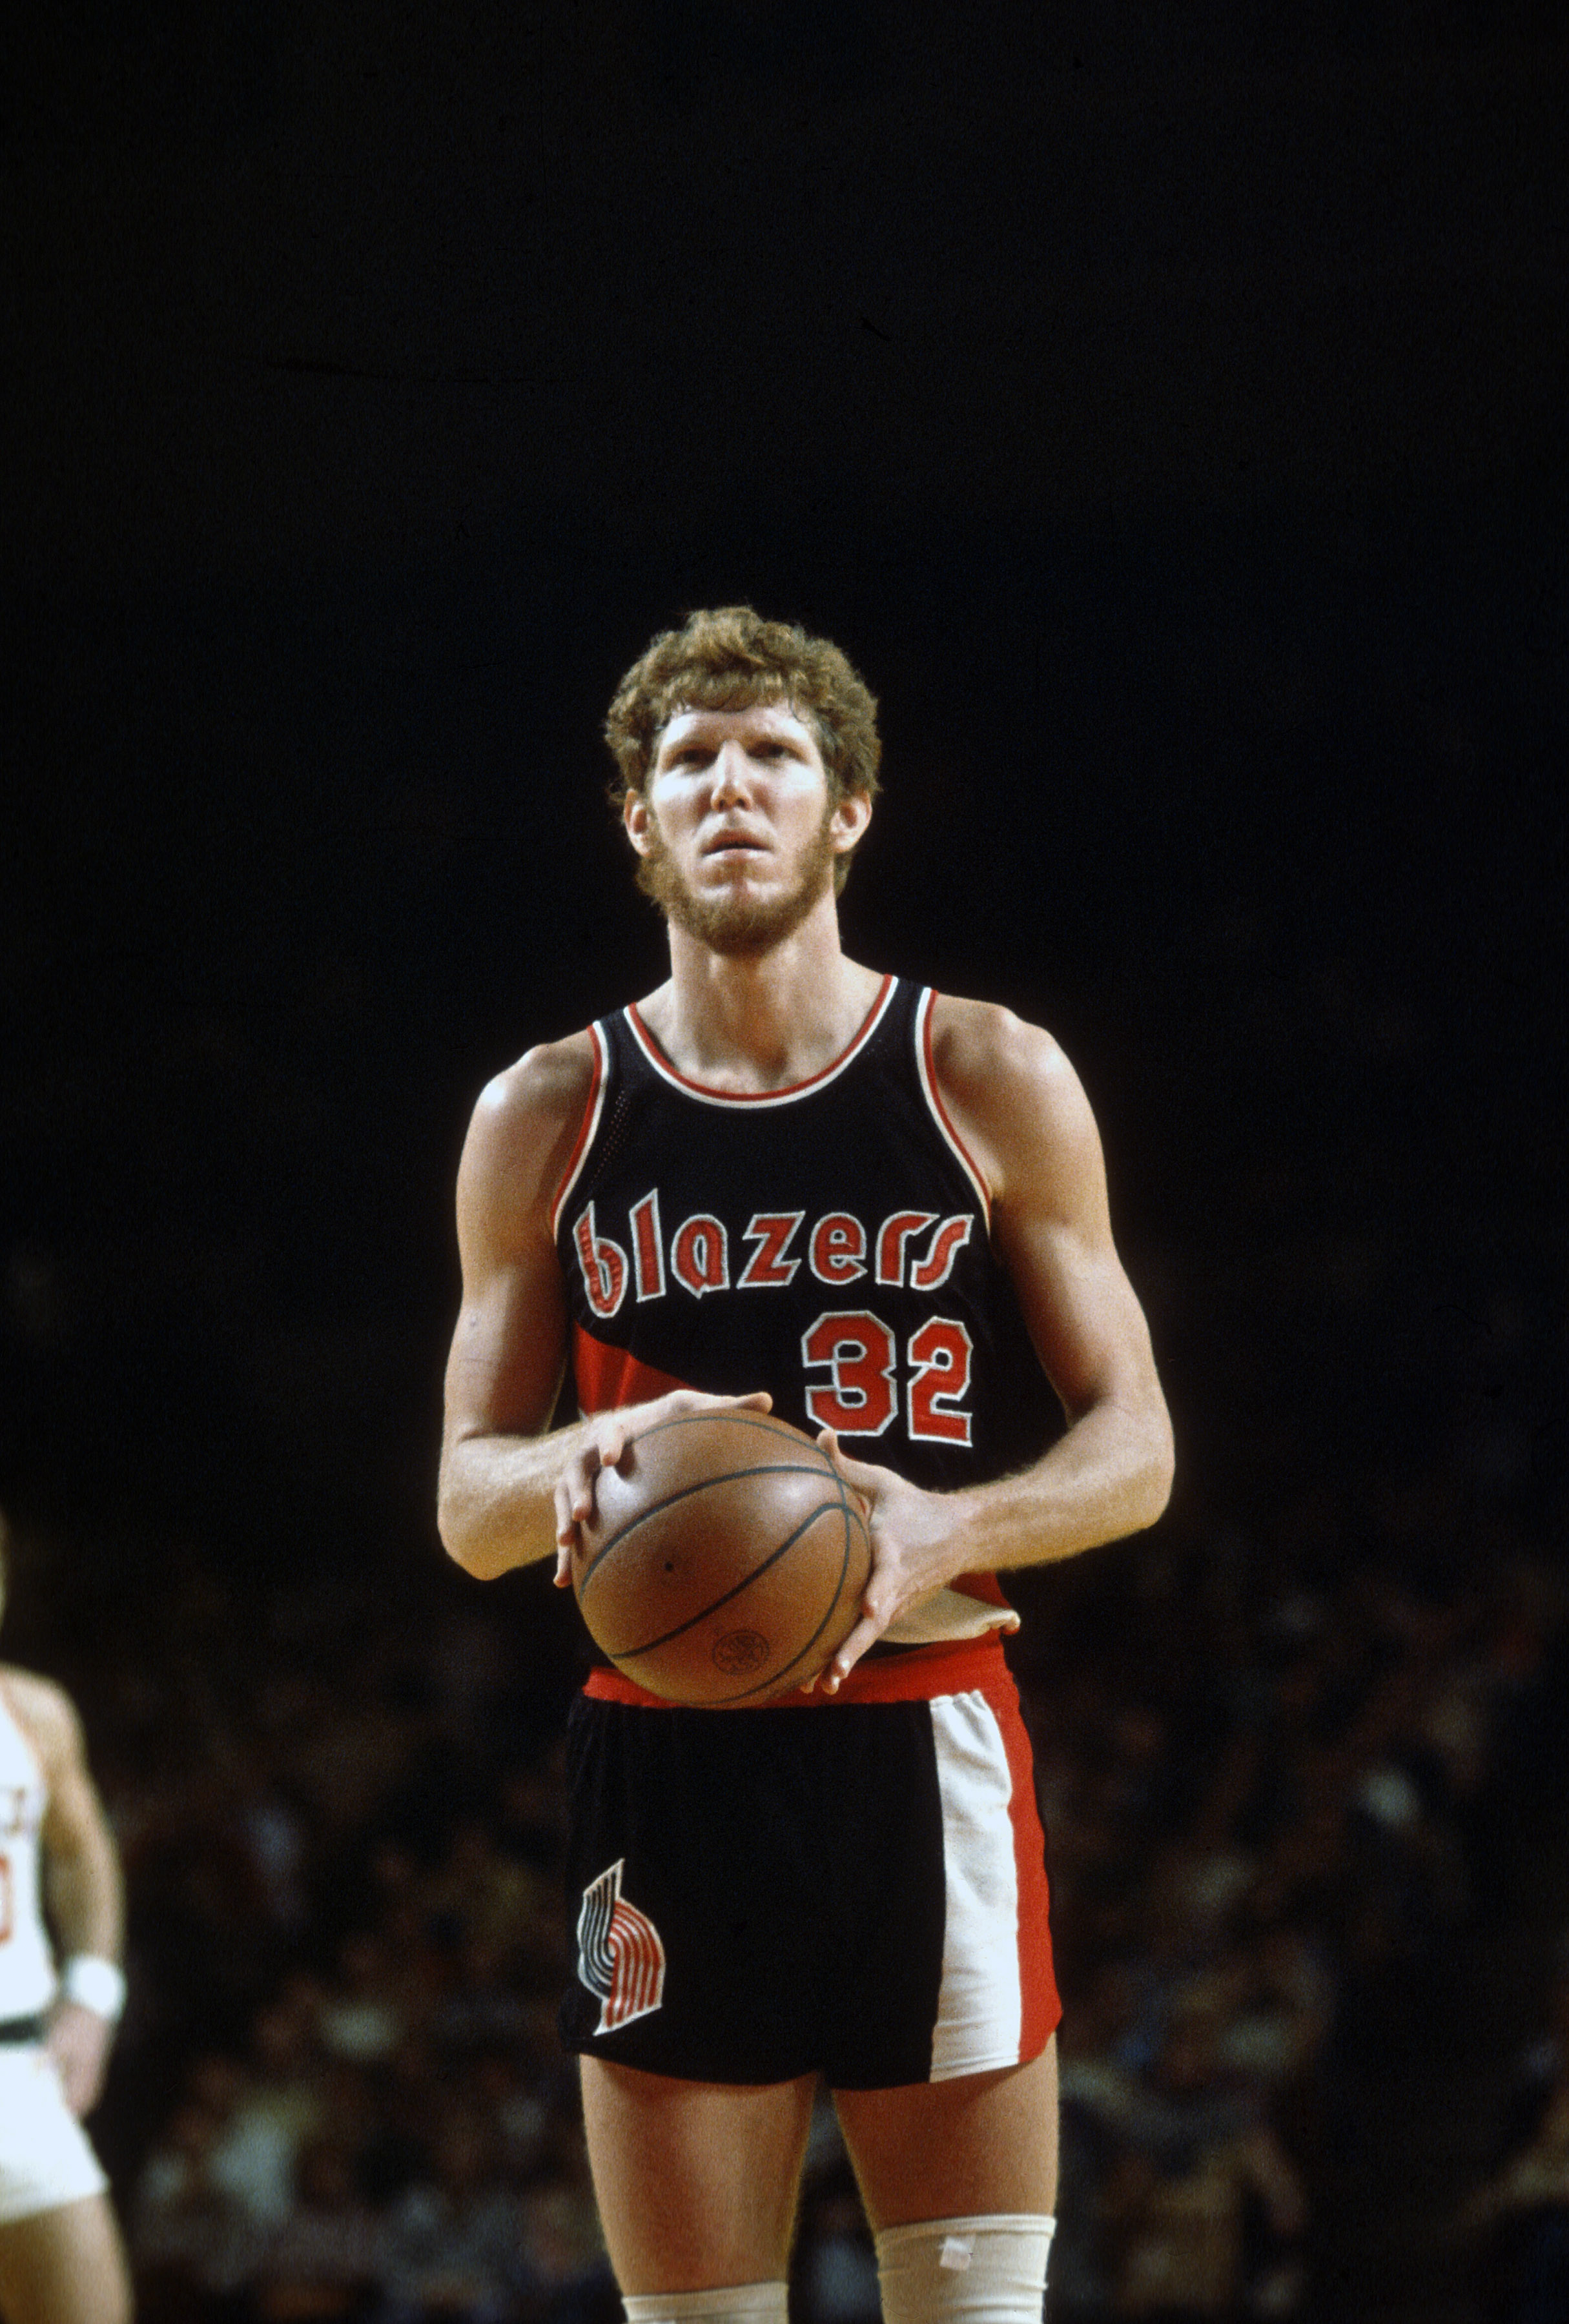 MILWAUKEE, WI - CIRCA 1977: Bill Walton #32 of the Portland Trail Blazers looks to shoot a free throw against the Milwaukee Bucks during an NBA basketball game circa 1977 at the MECCA Arena in Milwaukee, Wisconsin. Walton played for the Trailblazers from 1974 - 79. (Photo by Focus on Sport/Getty Images)